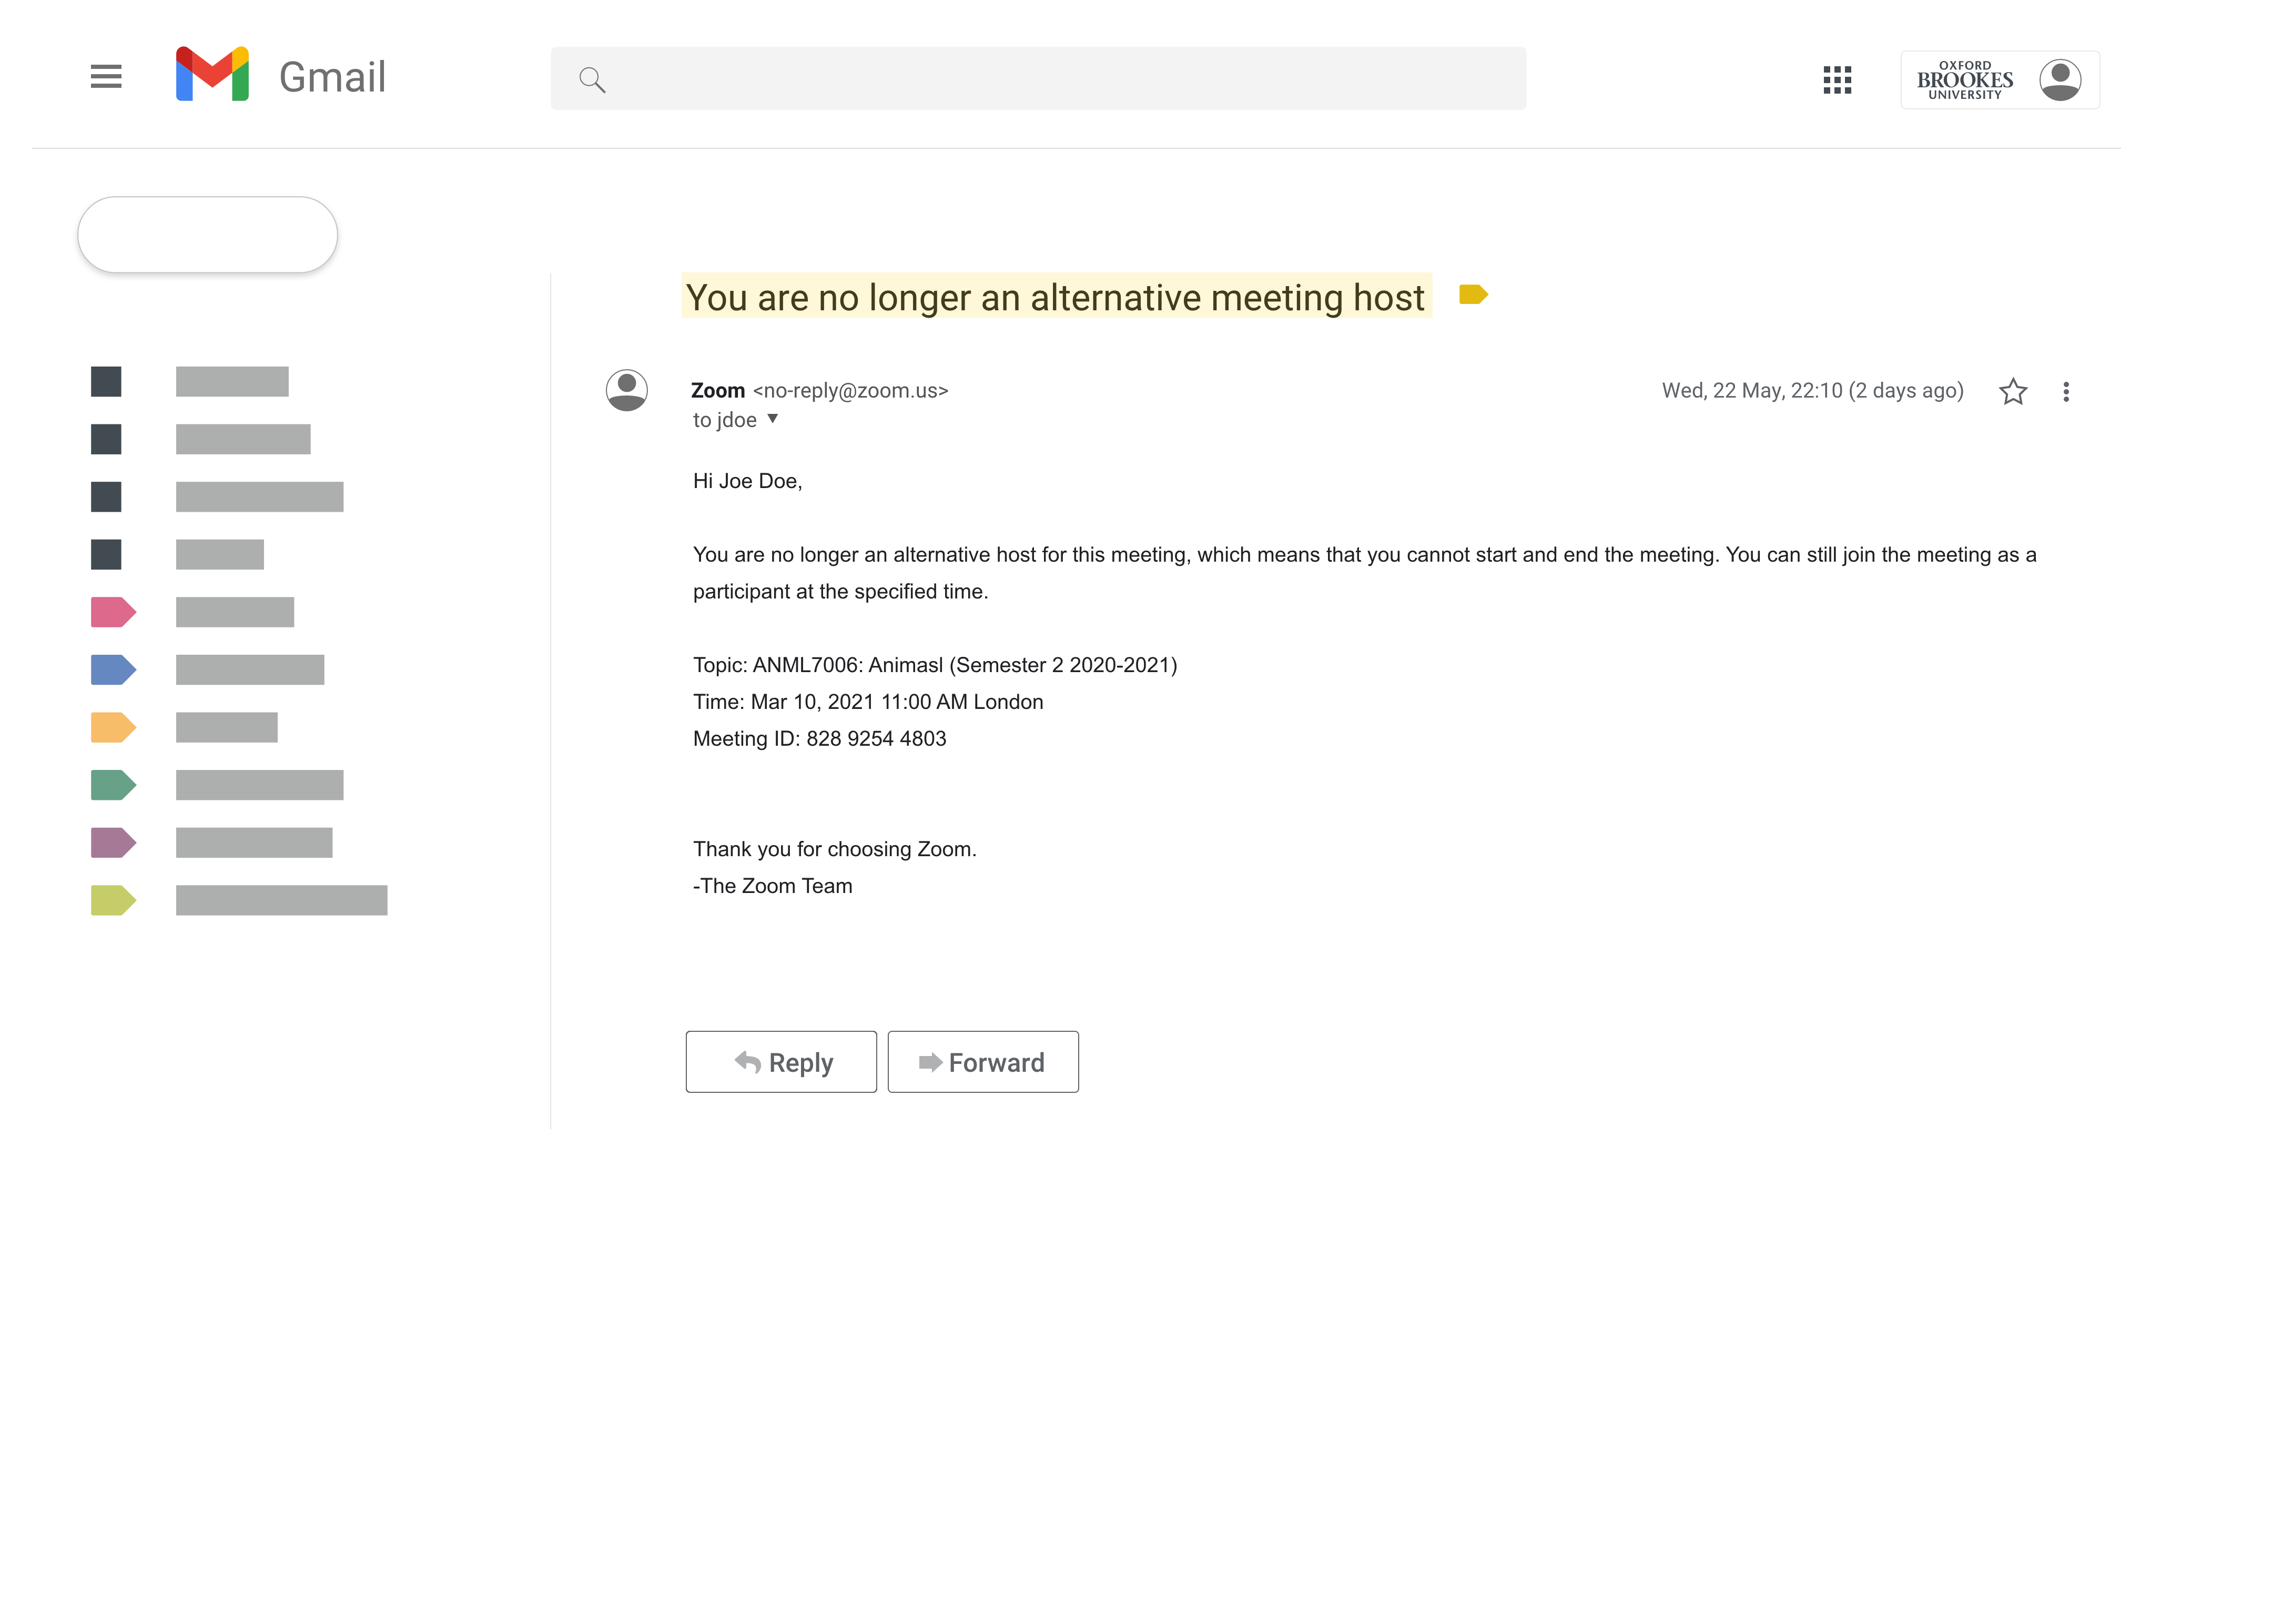 """Gmail screenshot that shows an example of an email with a subject line highlighted in yellow that reads """"You are no longer an alternative meeting host"""" and body text that reads """"You are no longer an alternative host for this meeting, which means that you cannot start and end the meeting. You can still join the meeting as a participant at the specified time""""."""